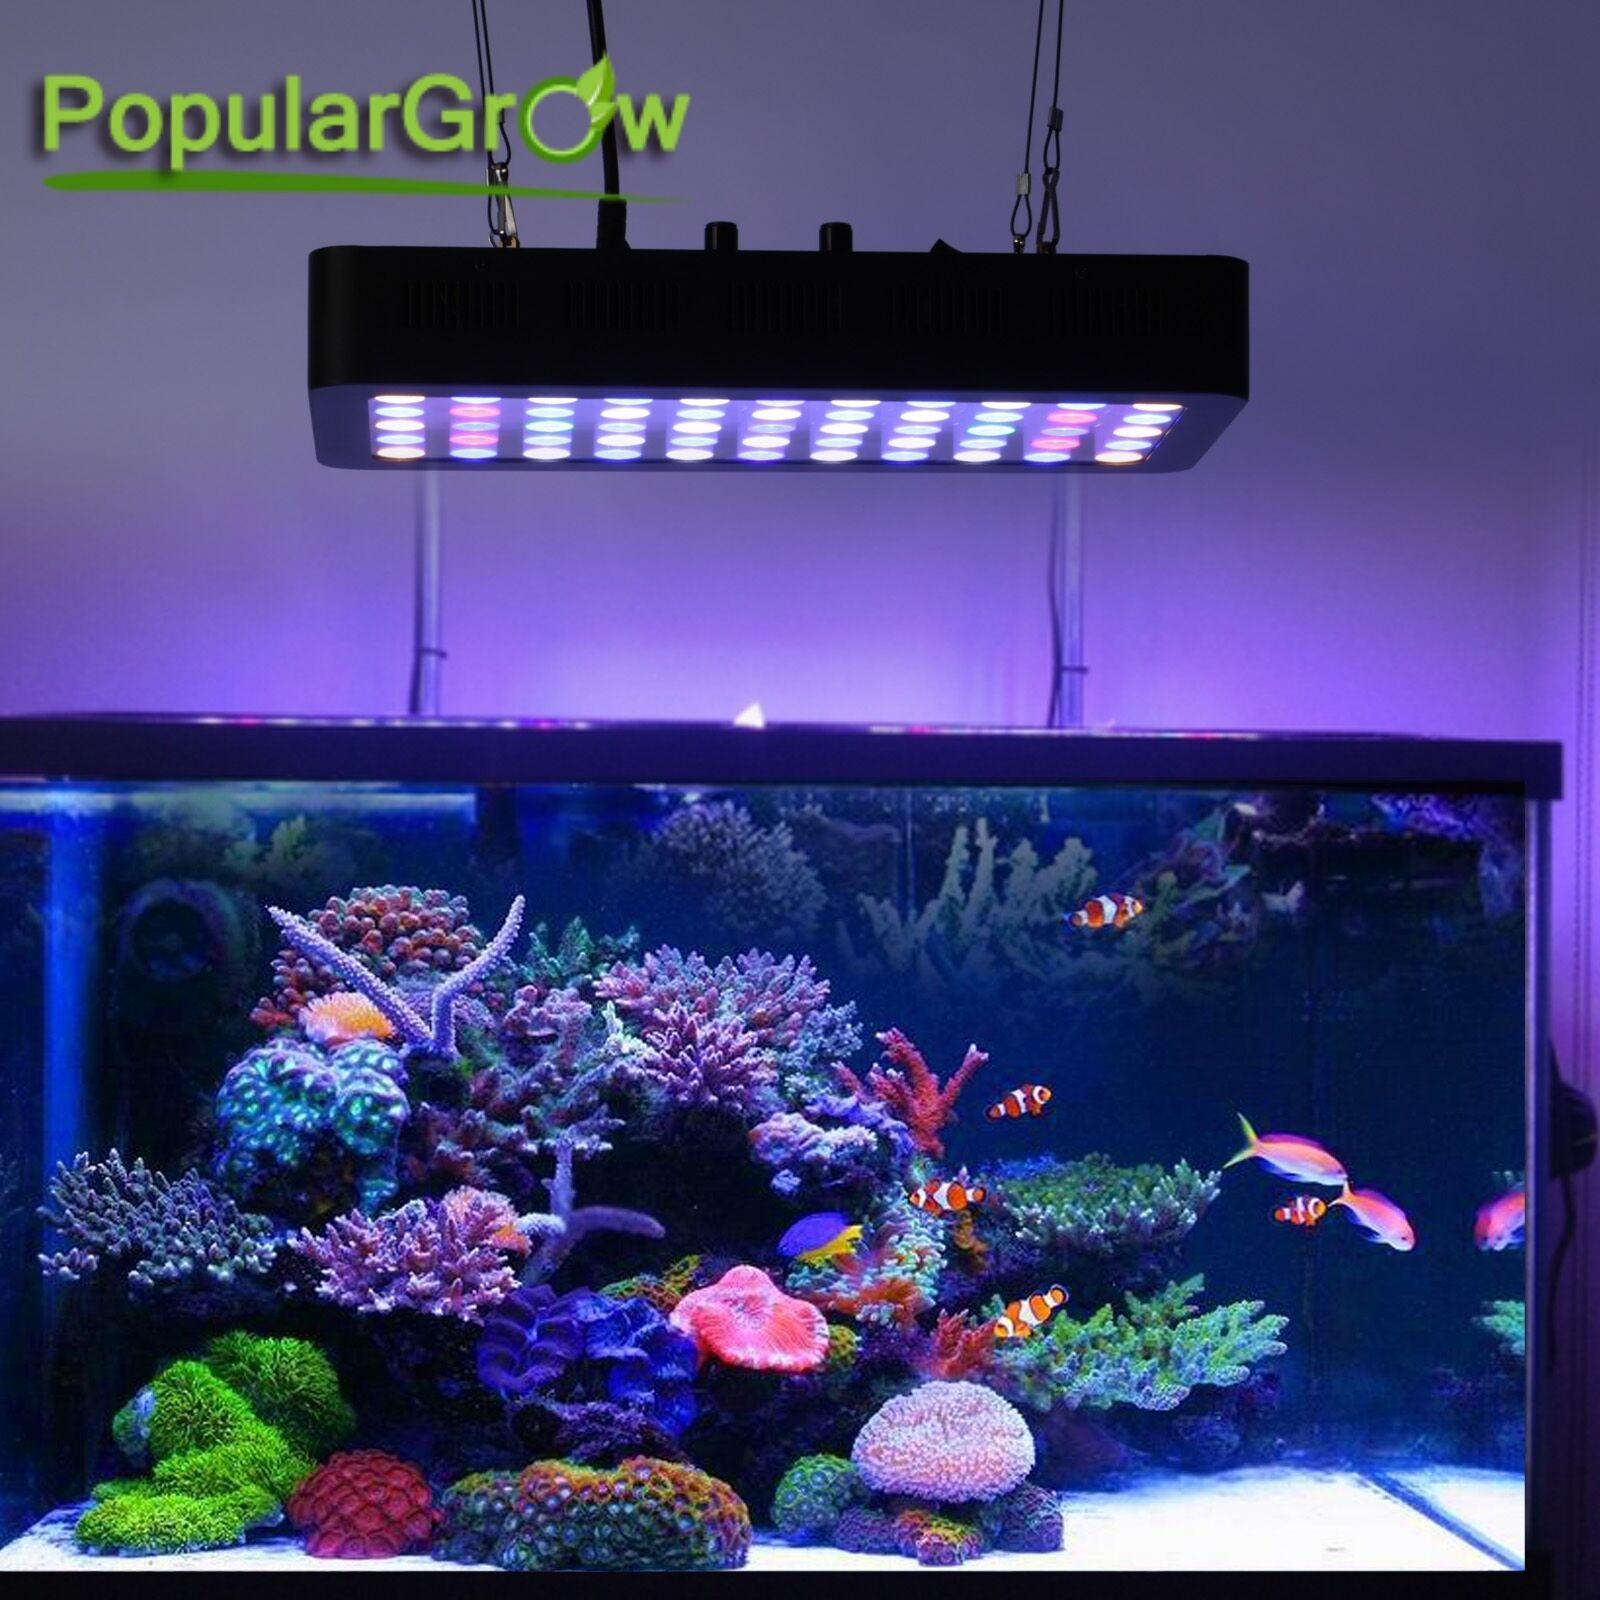 simplicity photo video aquarium here james green is which and second more the of how layout aquascape machine aquascaping light by latest findley superstore to an lights shallow he in has photos tutorials nature videos titled depth articles